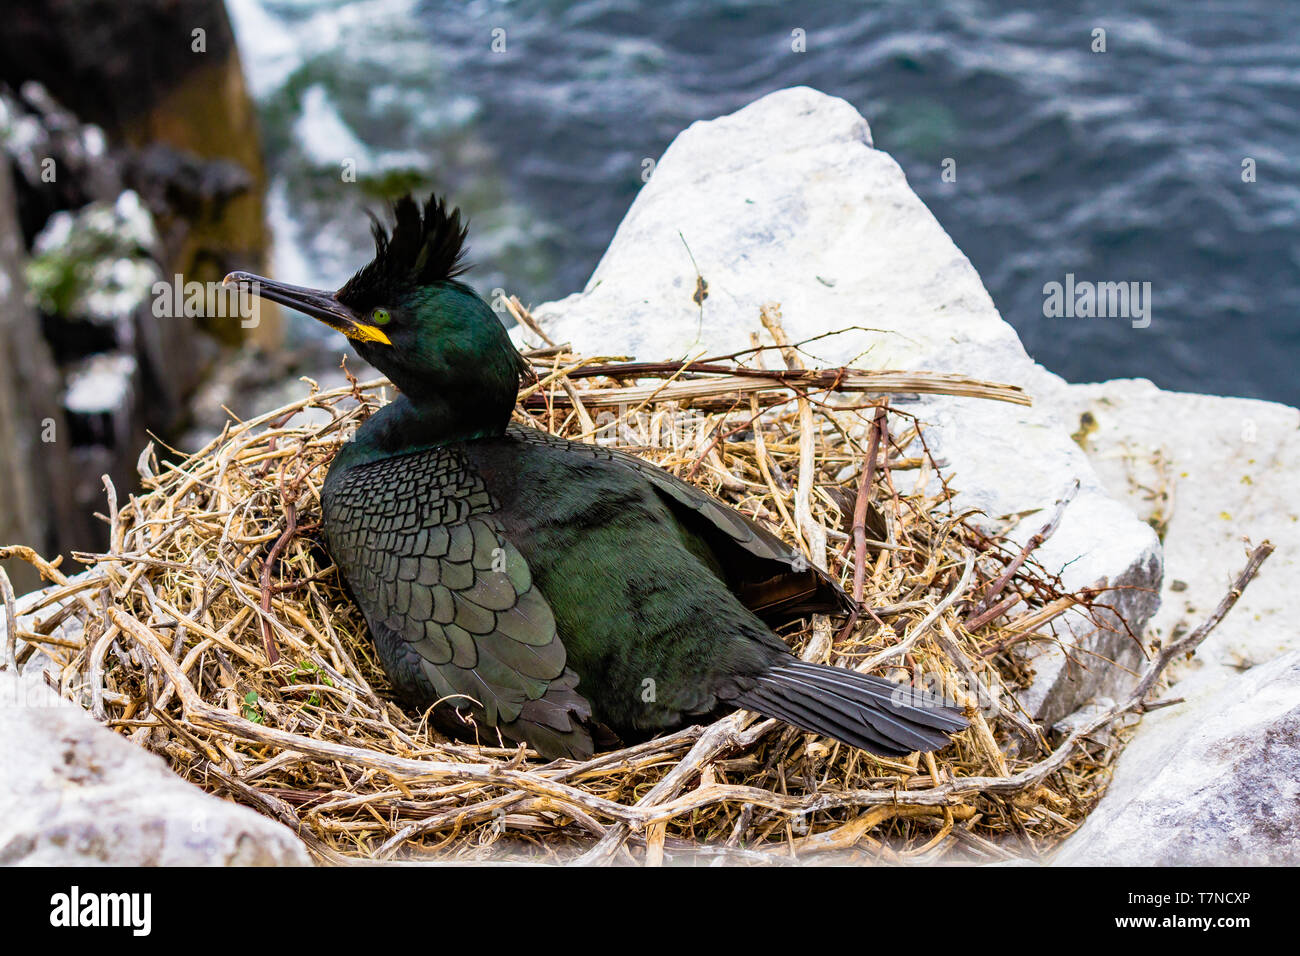 The Common Shag, a species of cormorant, on a nest during the spring breeding season on the Farne Islands, Northumberland, UK. May 2018. - Stock Image